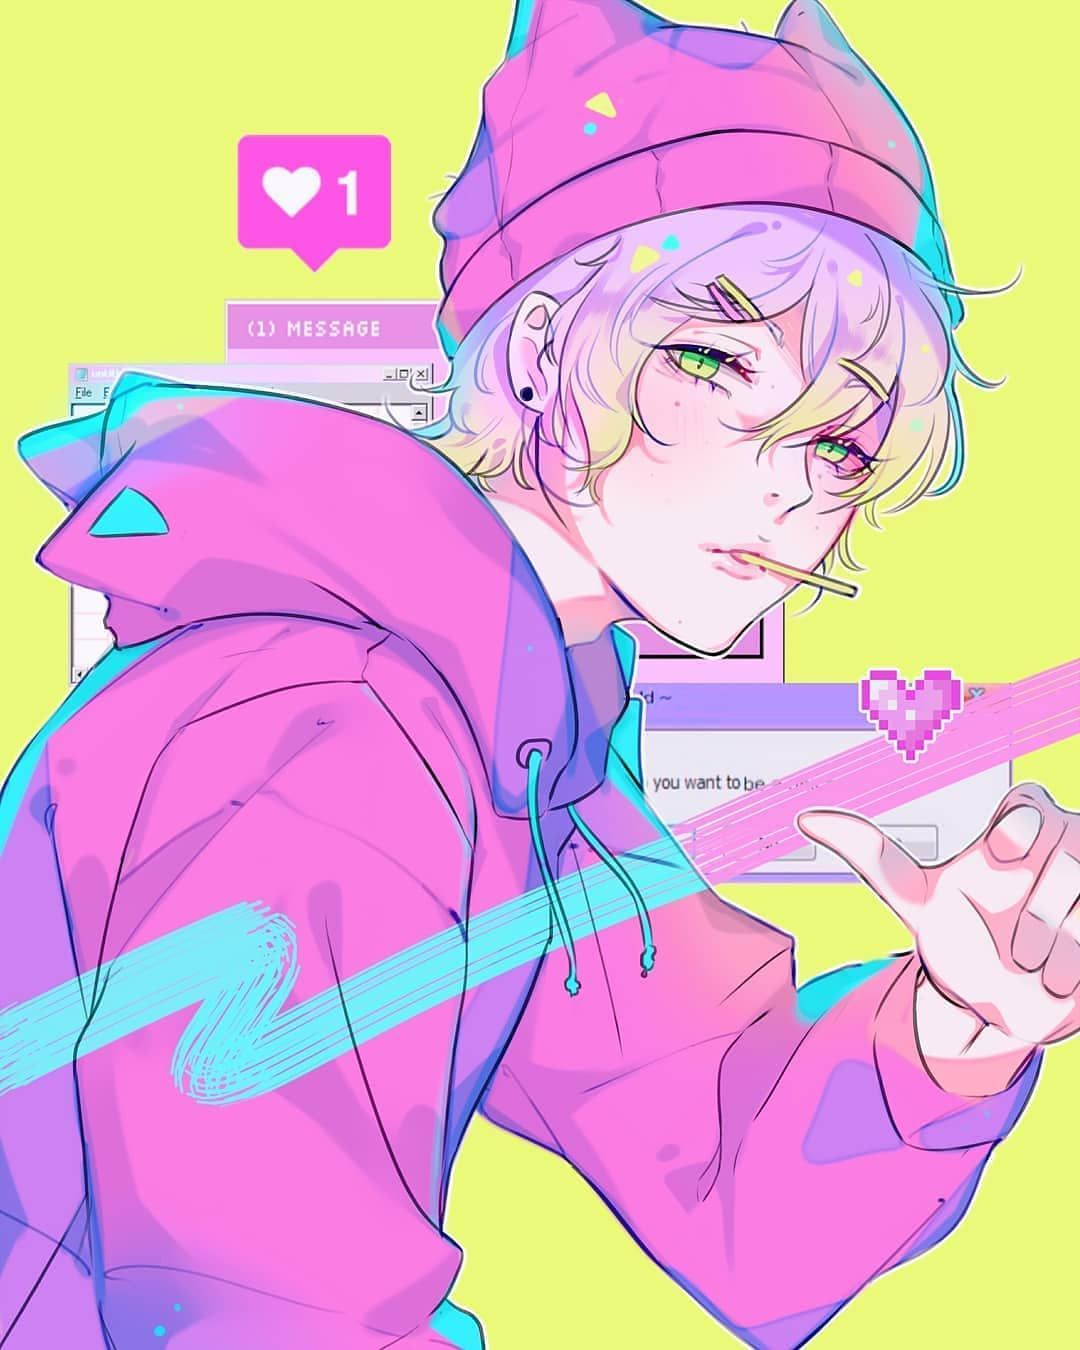 𝐃𝐚𝐢𝐥𝐲 𝐀𝐧𝐢𝐦𝐞 𝐀𝐫𝐭 On Instagram 𝘈𝘳𝘵𝘪𝘴𝘵 0111 Which One Is Your Favorite 1 9 Anime Boy Anime Guys Aesthetic Anime